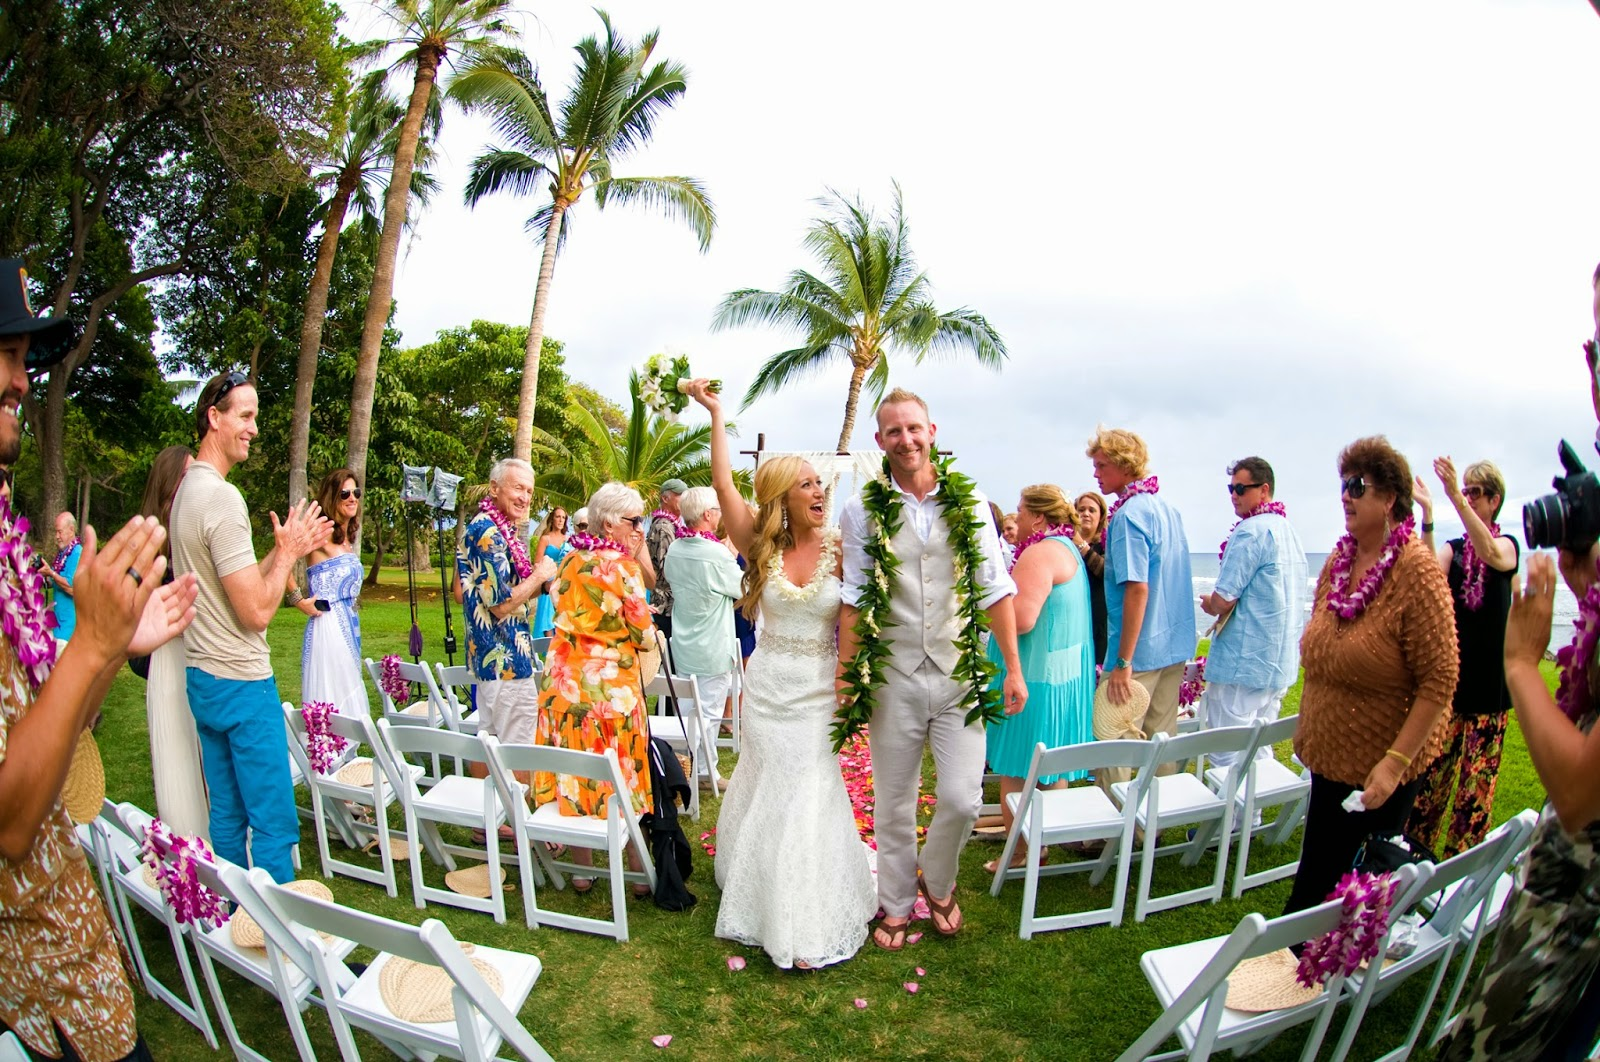 maui weddings, maui private estate weddings, maui wedding photographers, maui wedding planners, marry me maui